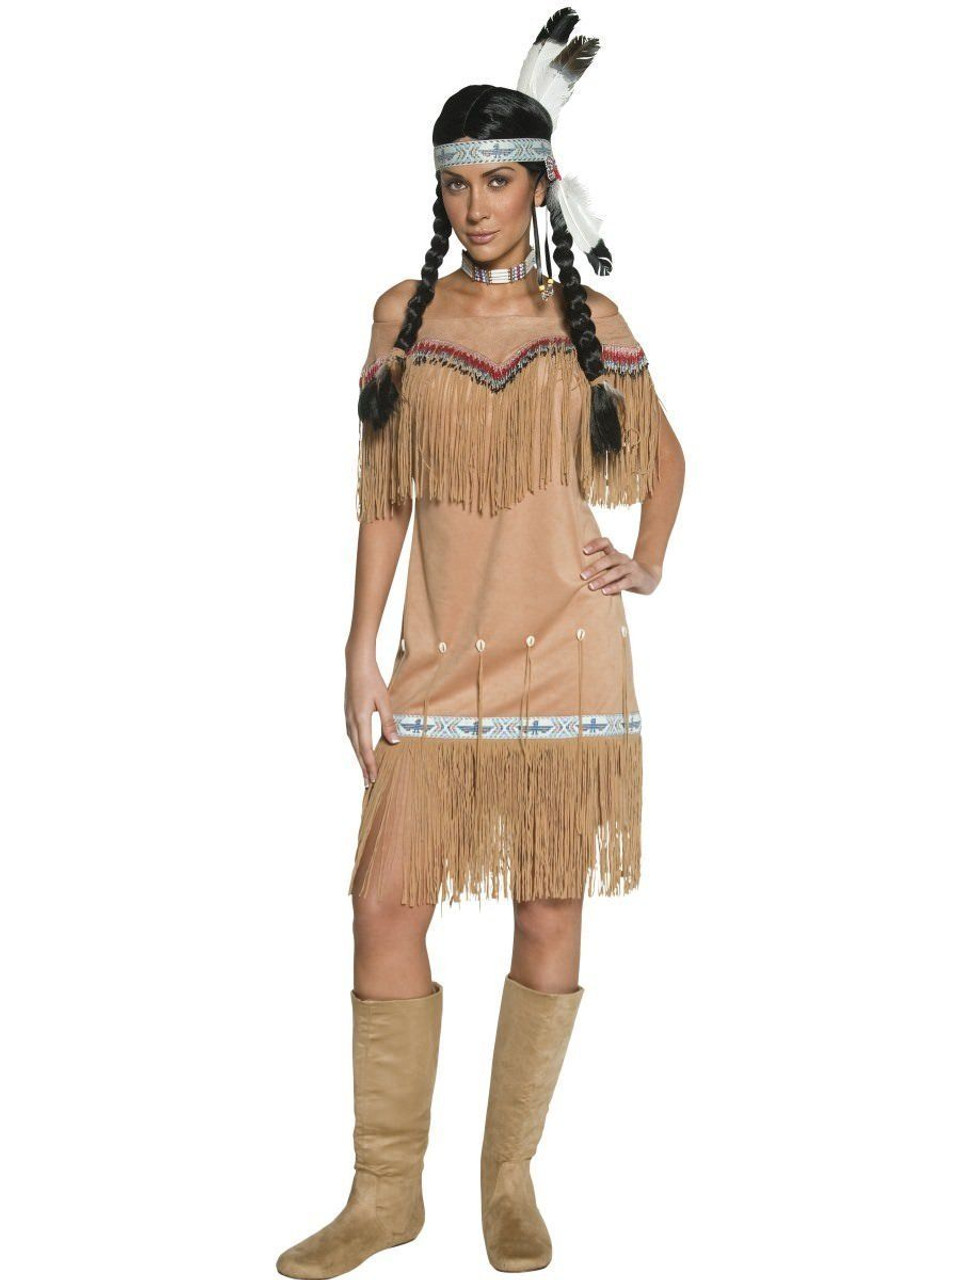 461507979da Smiffys Native American Indian Inspired Adult Womens Halloween Costume 36127